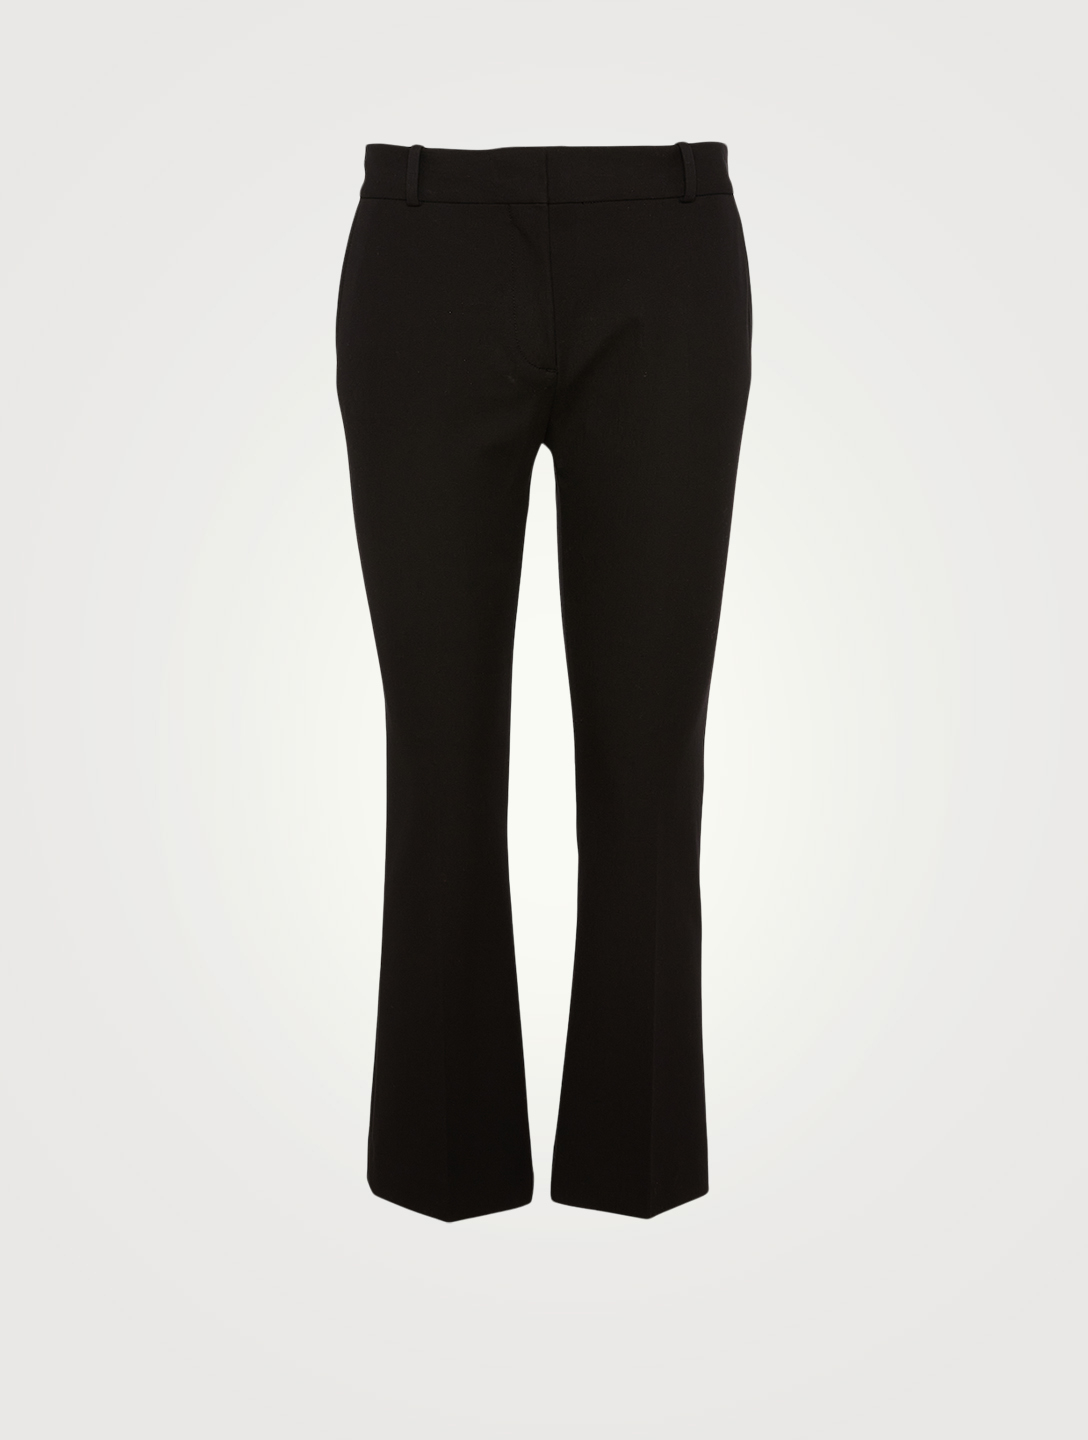 FRAME Le Crop Mini Bootcut Pants Women's Black